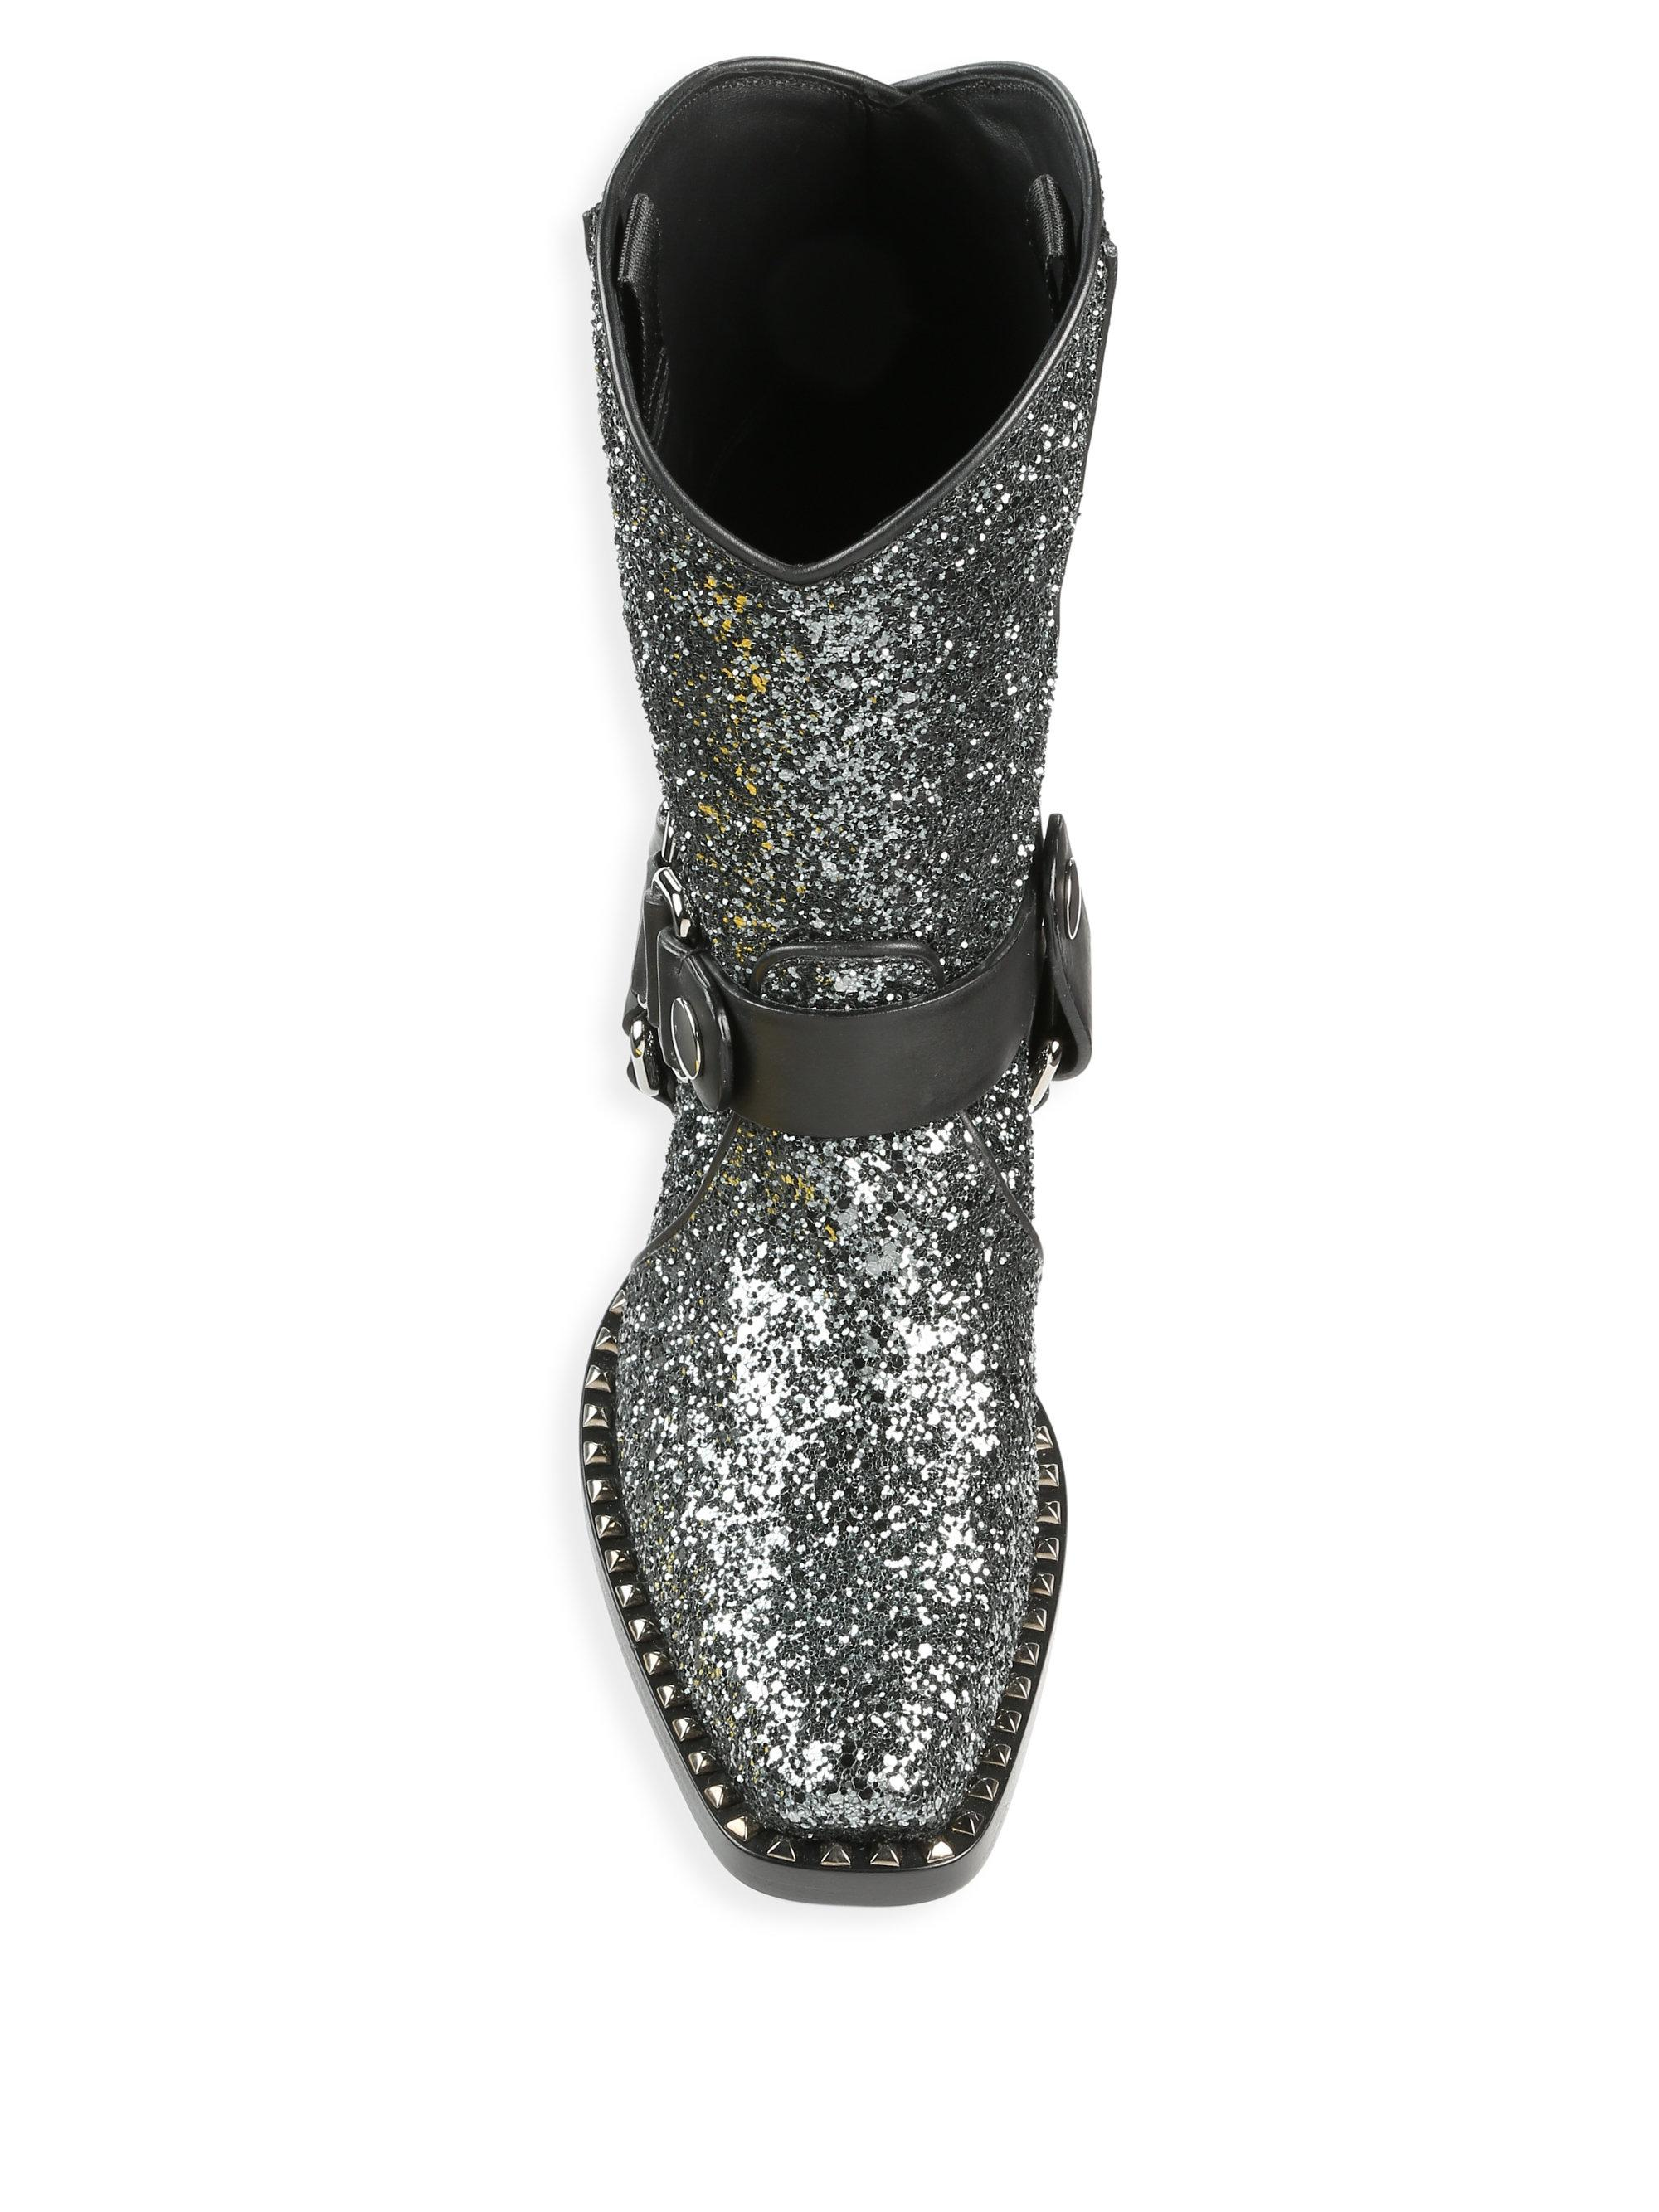 1d51be1558b9 Gallery. Previously sold at  Saks Fifth Avenue · Women s Cowboy Boots  Women s Miu Miu Glitter ...